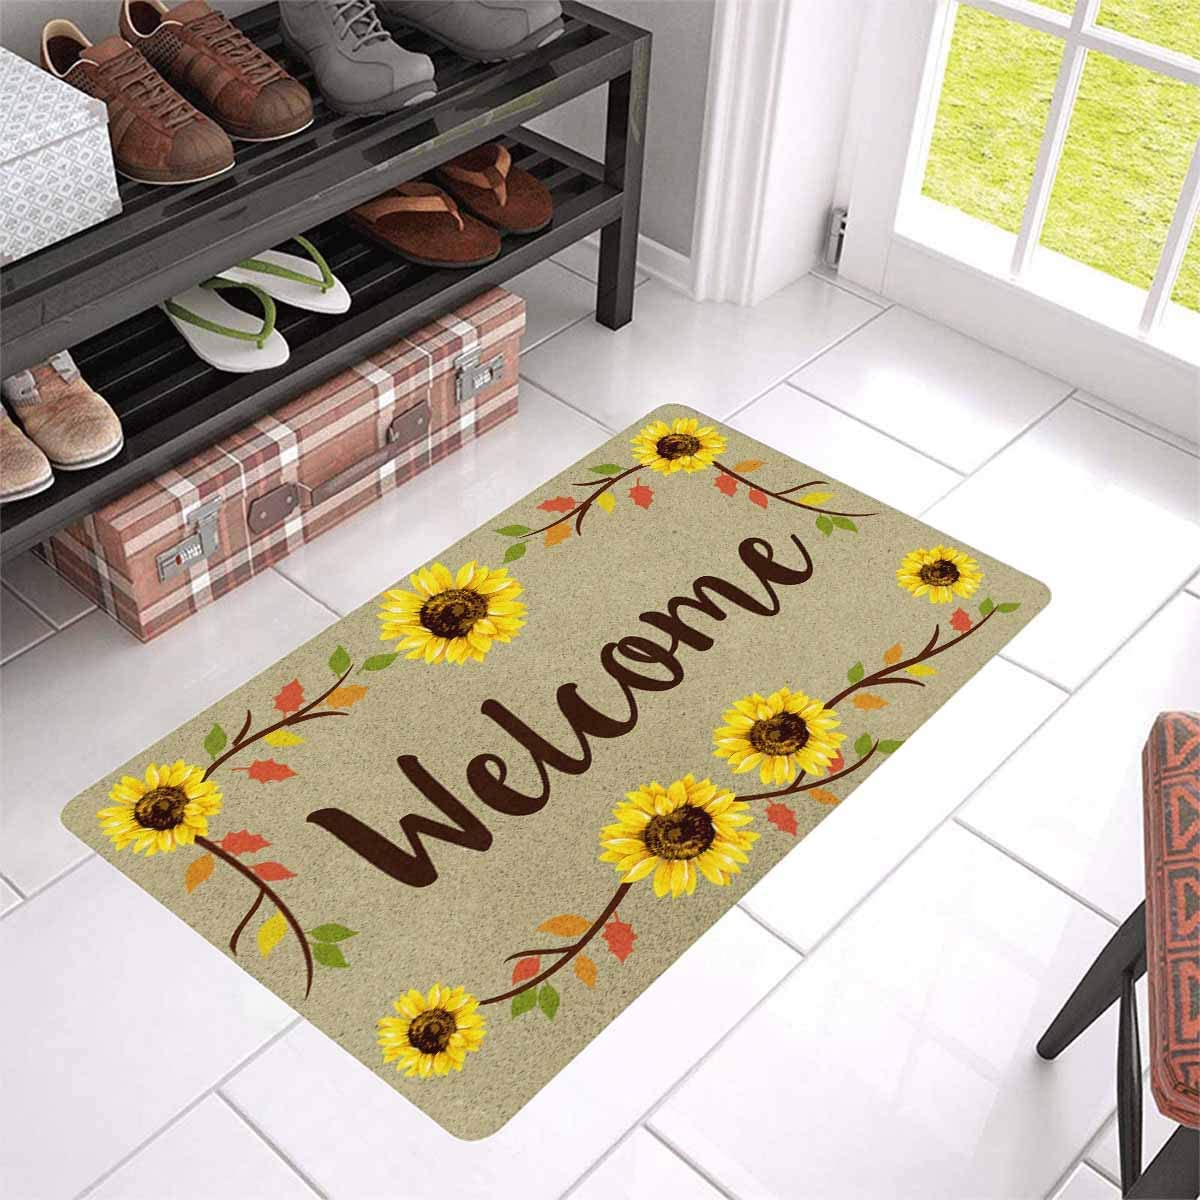 MyPhotoSwimsuits Custom Your Own Text Funny Personalized Doormat 30